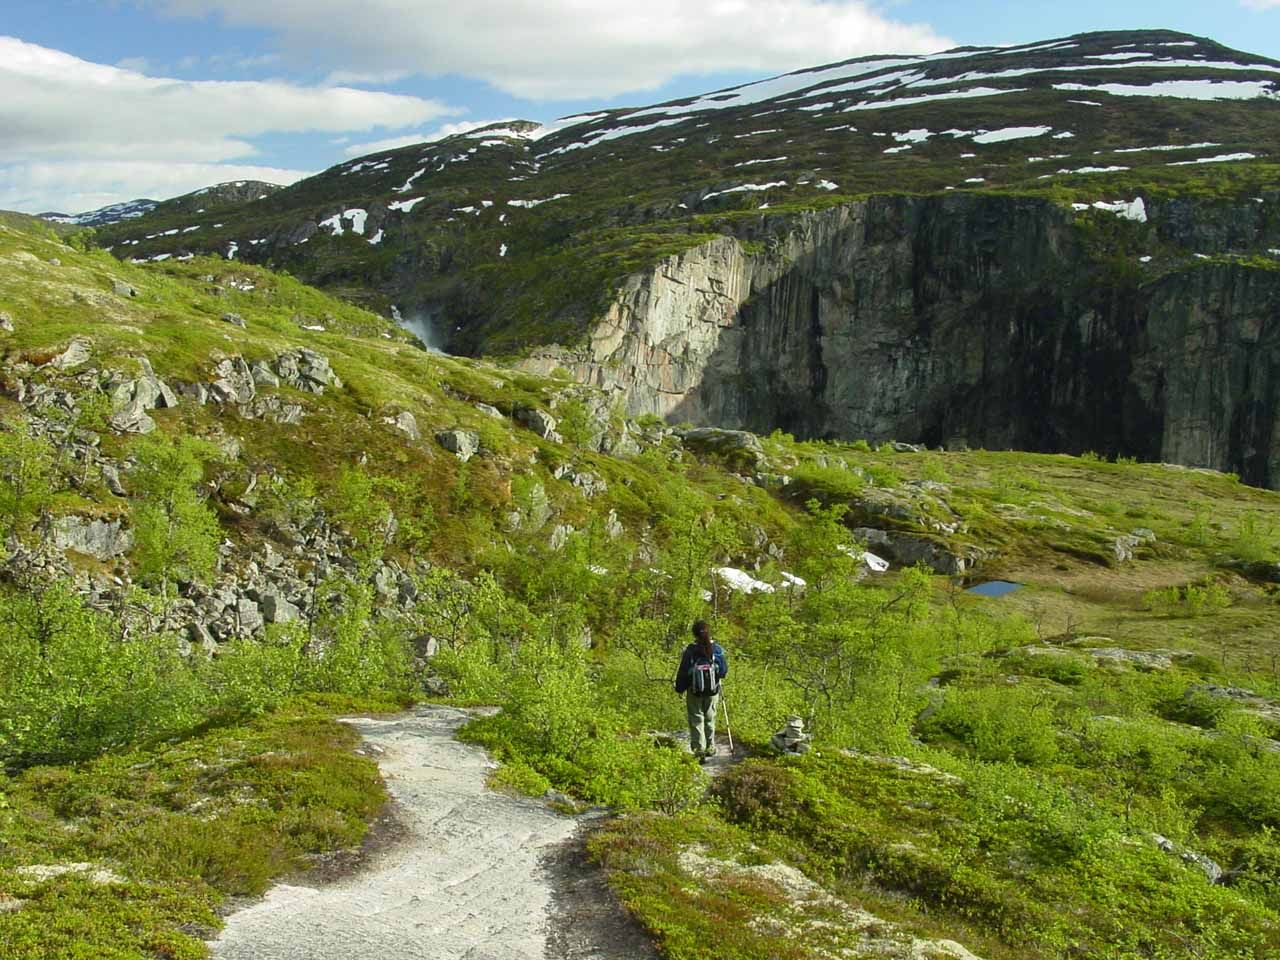 In the high country moors of the Hardanger Plateau in Norway as we hiked towards Valursfossen